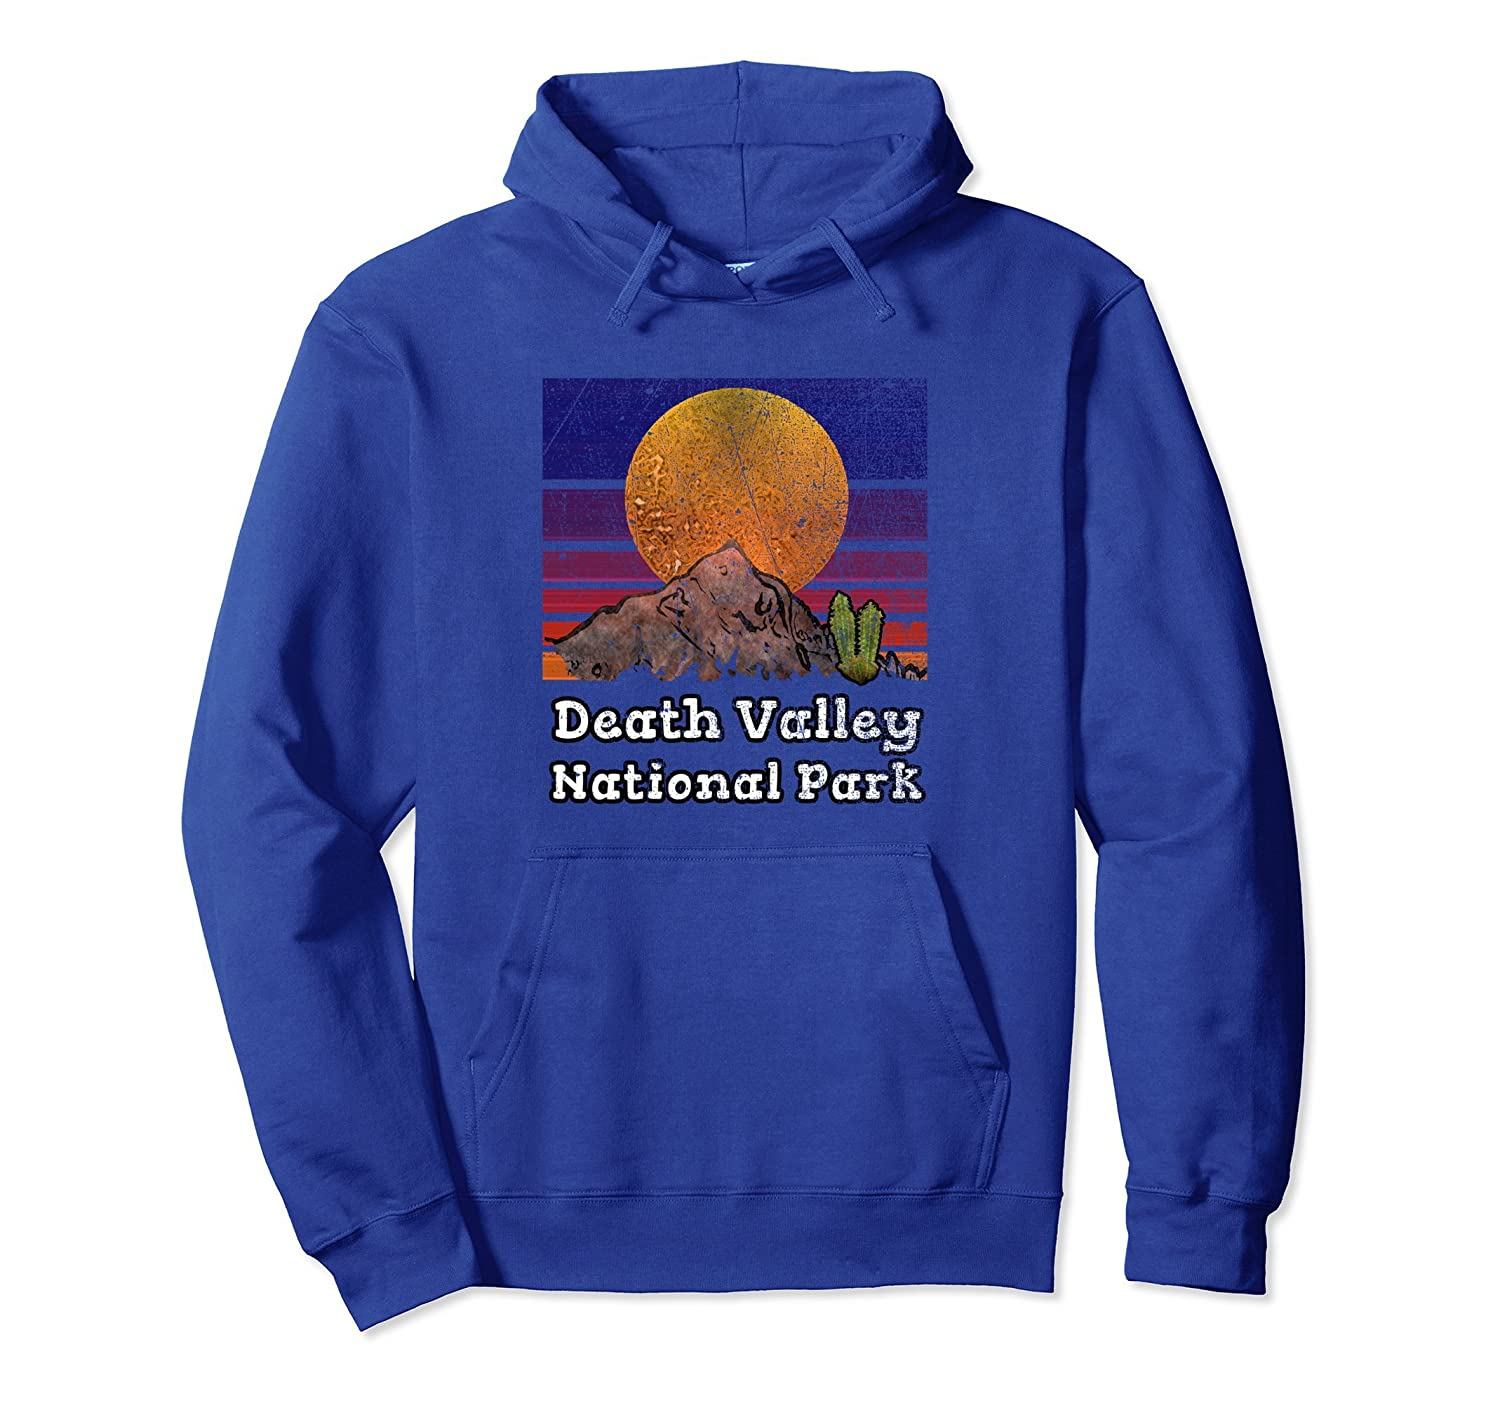 Death Valley National Park Hoodie with Desert Sunset Scenery-ah my shirt one gift